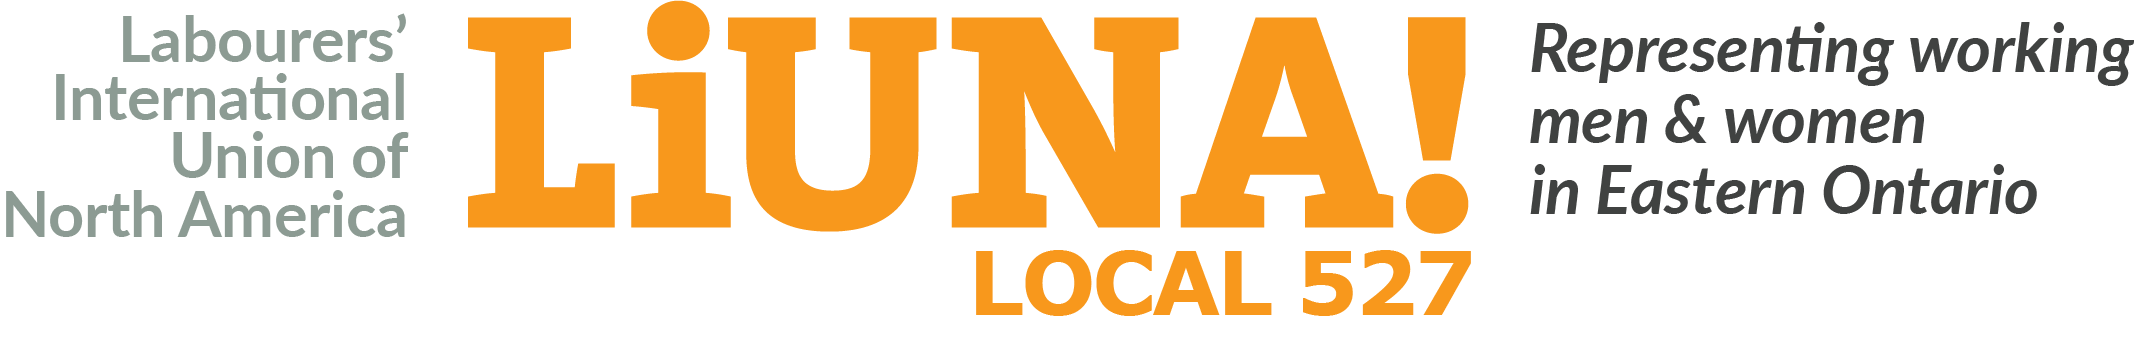 LiUNA Section locale 527